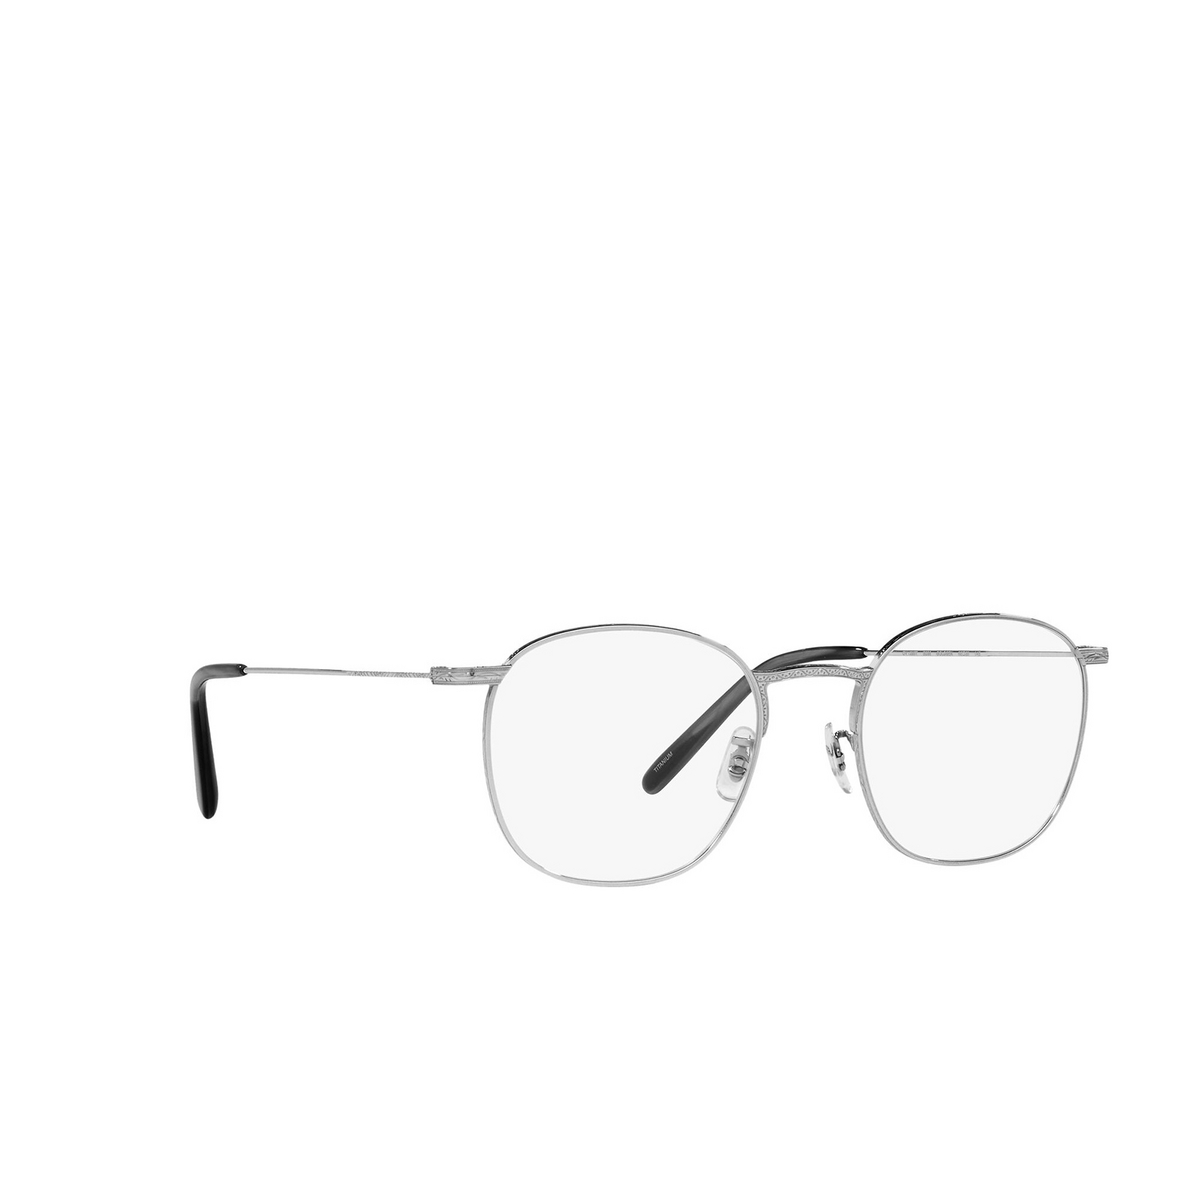 Oliver Peoples® Square Eyeglasses: Goldsen OV1285T color Silver 5036 - three-quarters view.